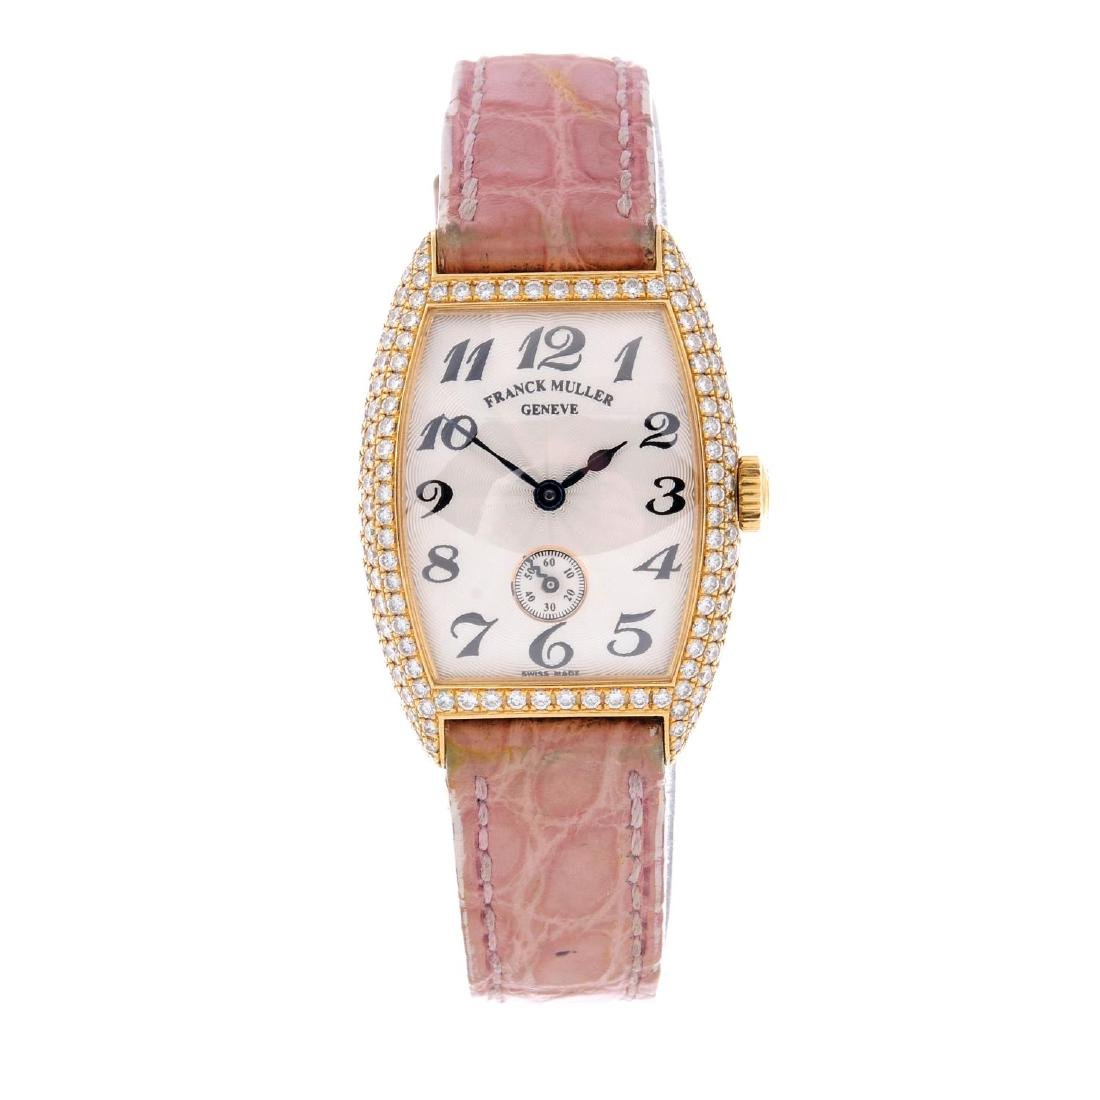 FRANCK MULLER - a lady's Cintree Curvex wrist watch.